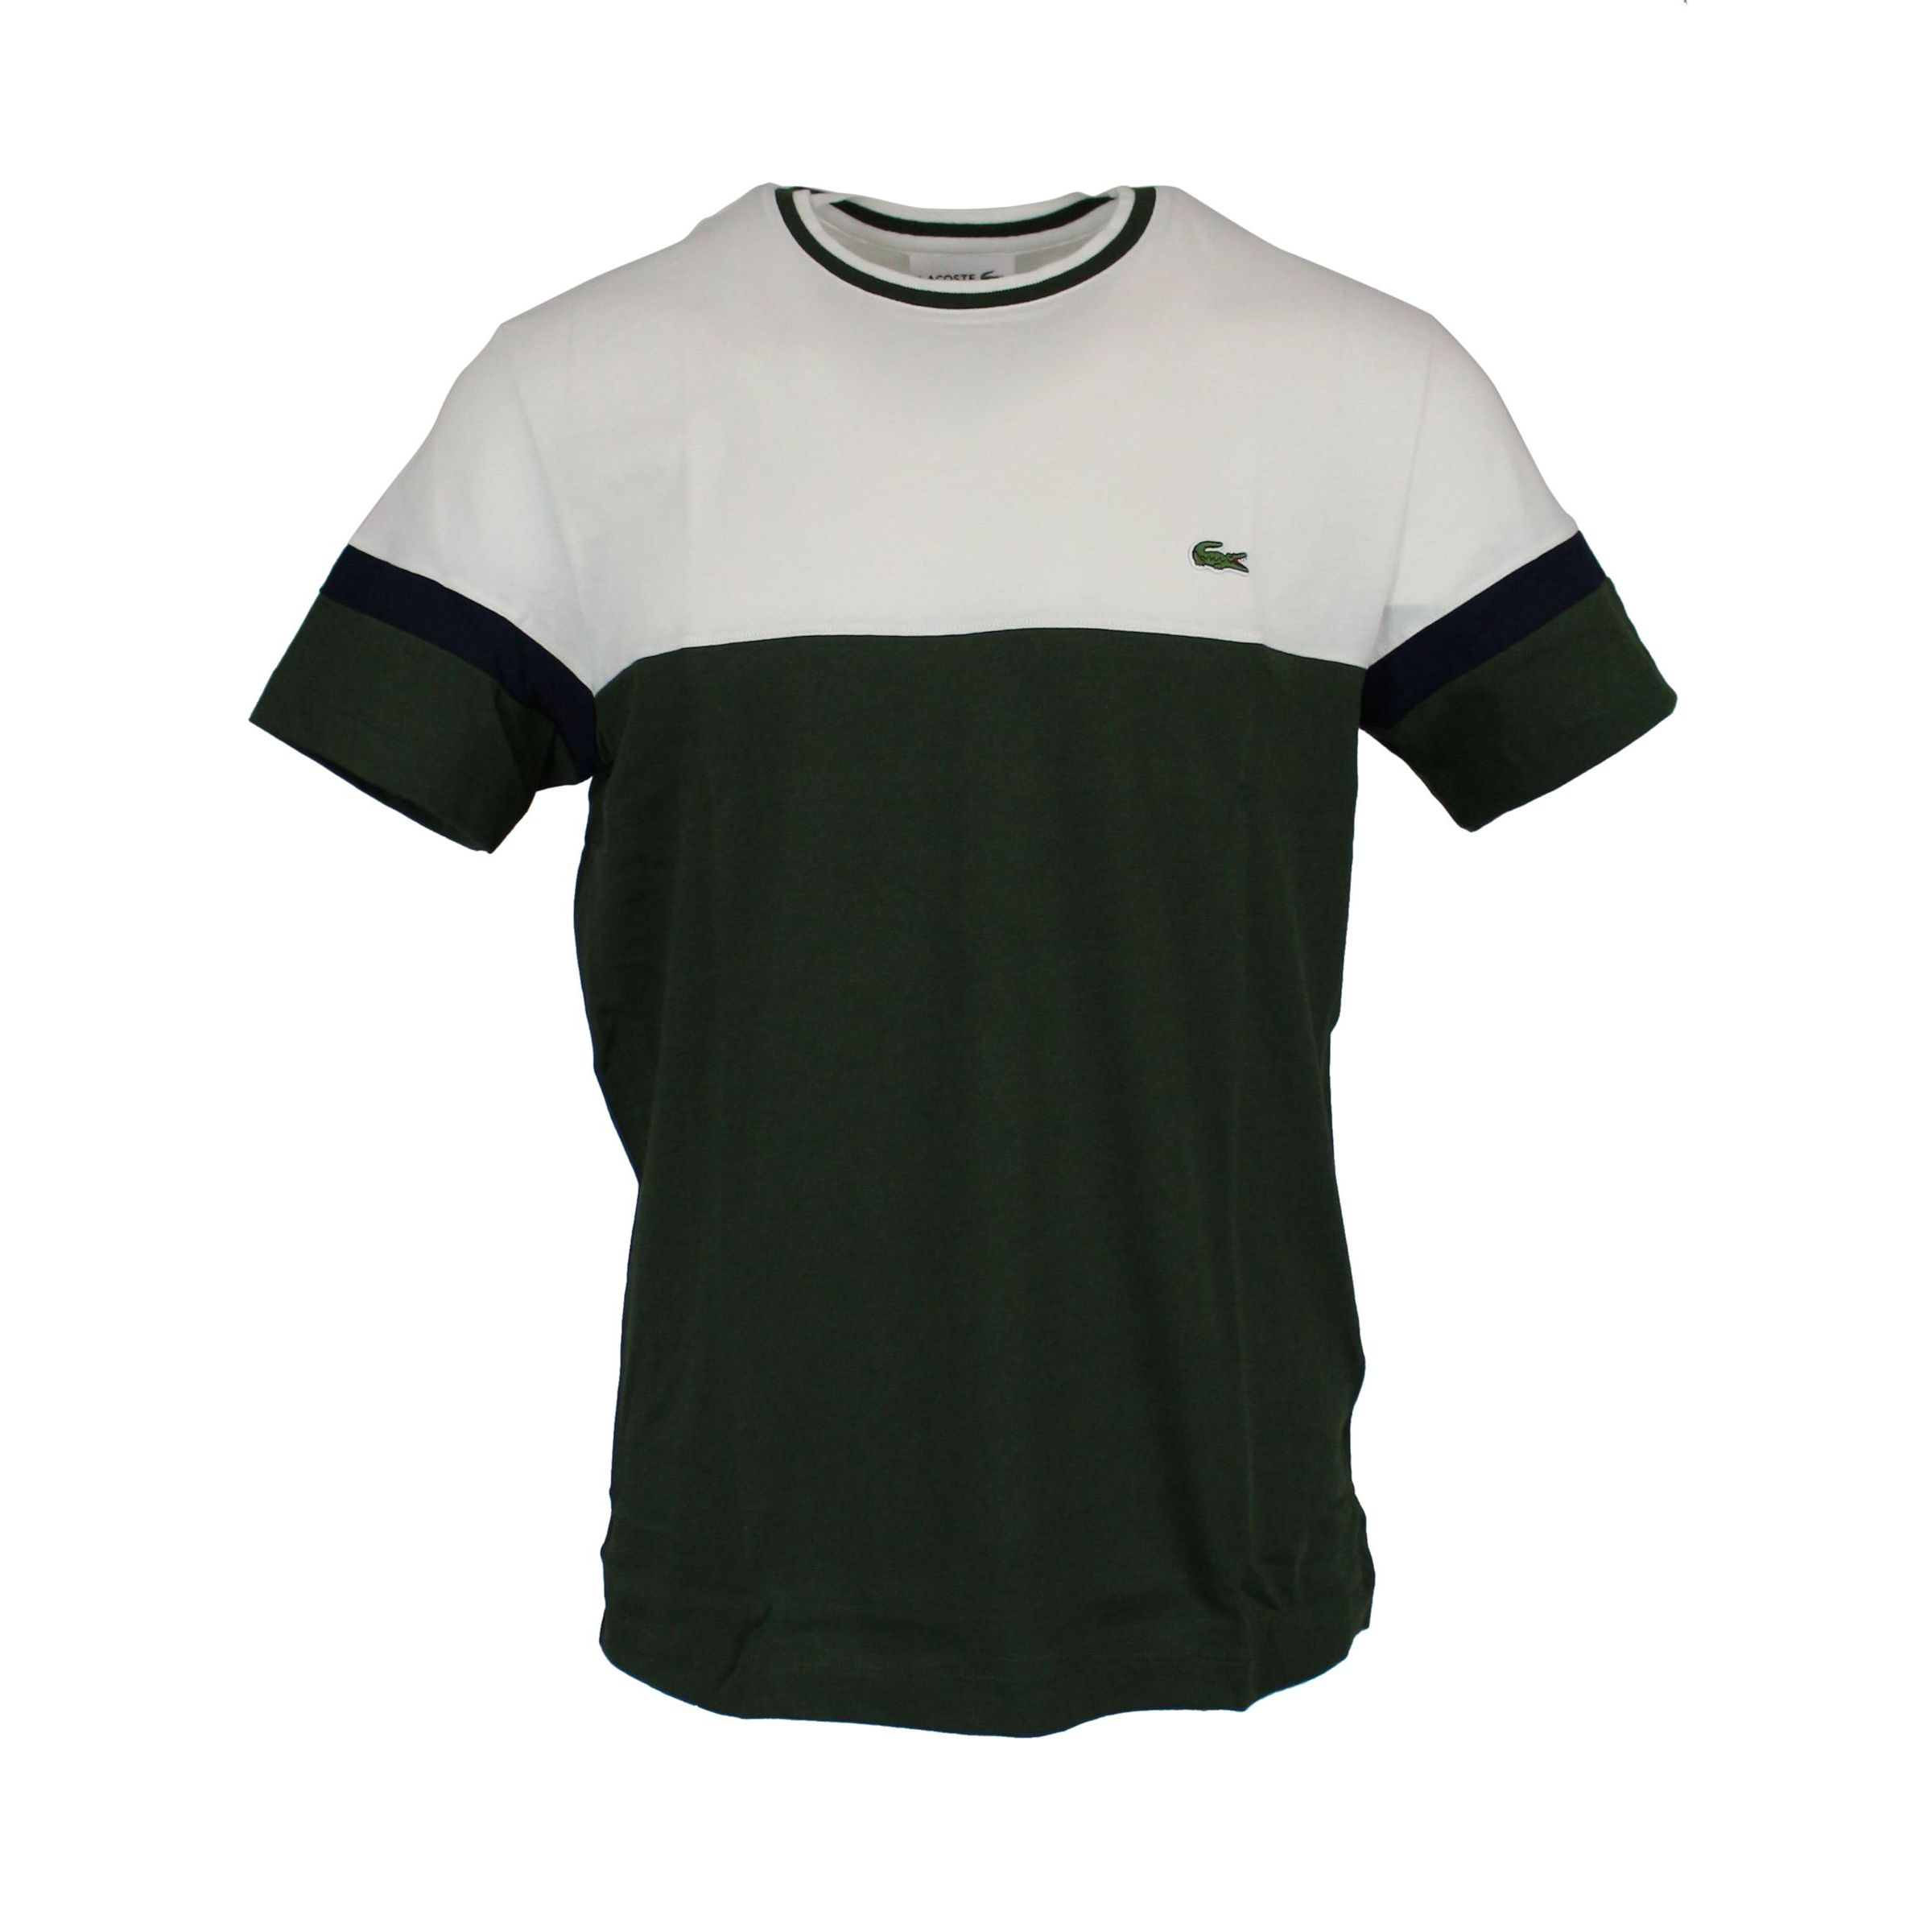 578ae267 T-shirt in two-tone cotton